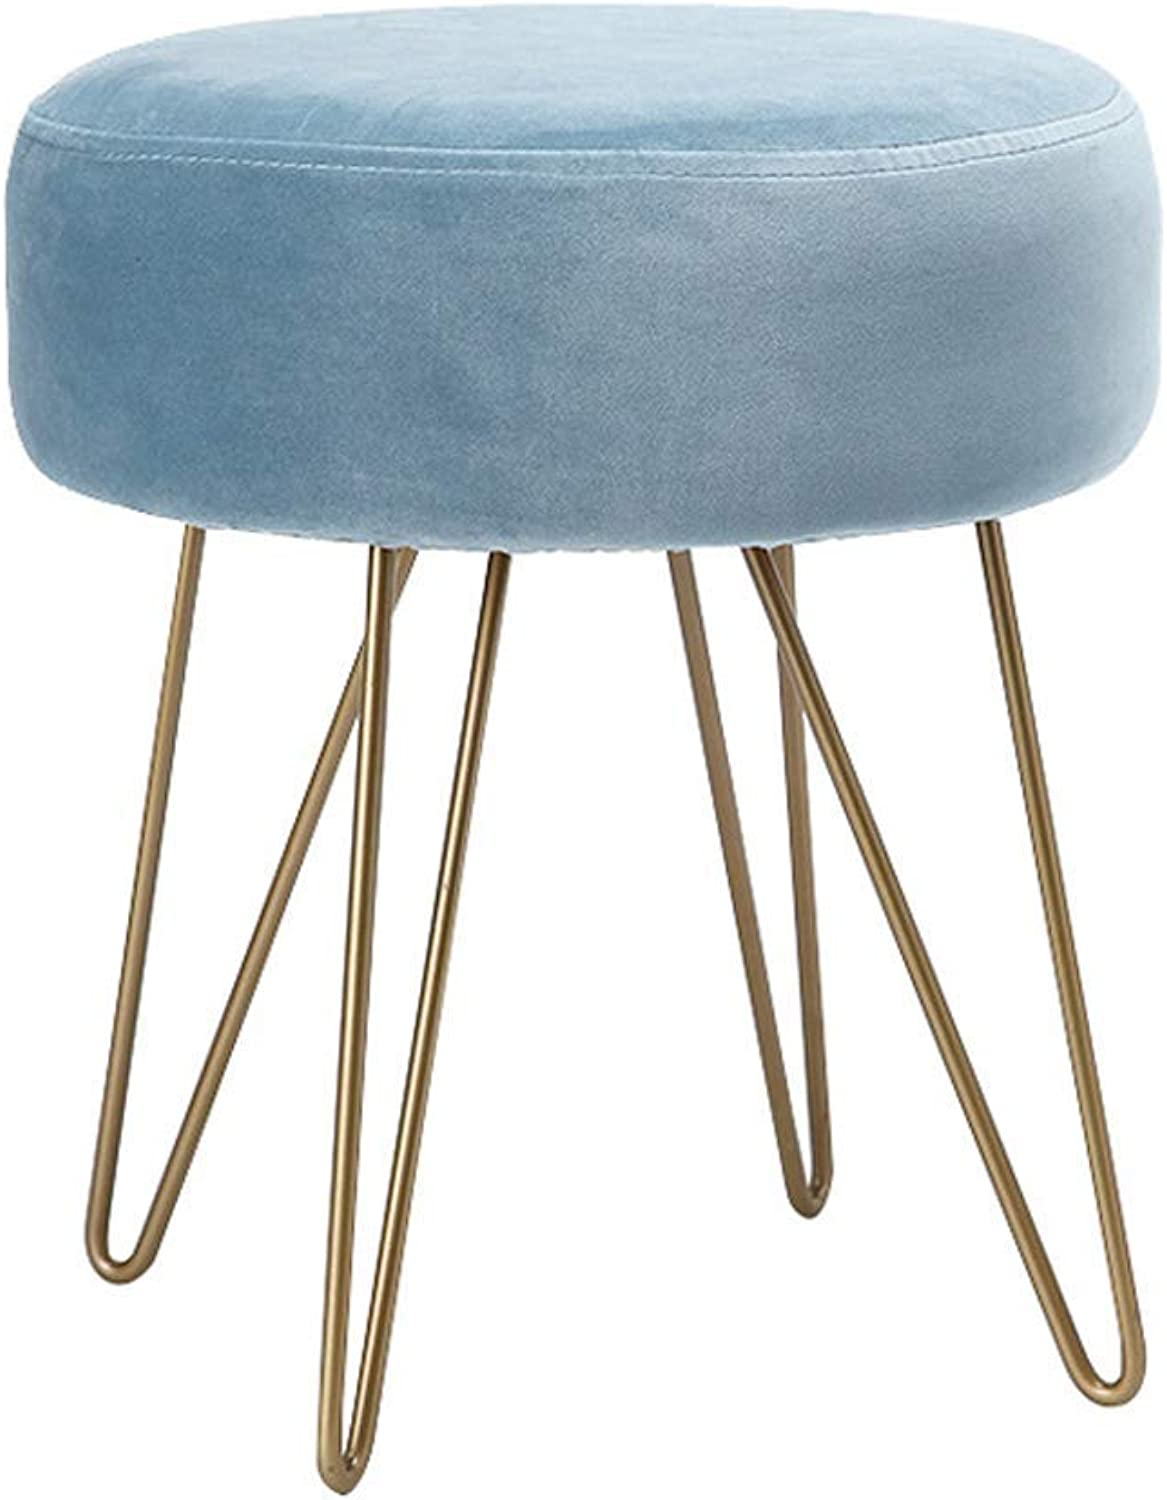 Simple Round Barstools,Nordic Bar Stool Makeup Tall Stool Leisure Pouffe Chair with Soft Sponge Seat for Bar Kitchen Bistro Pub Breakfast,35×35×40cm (bluee)